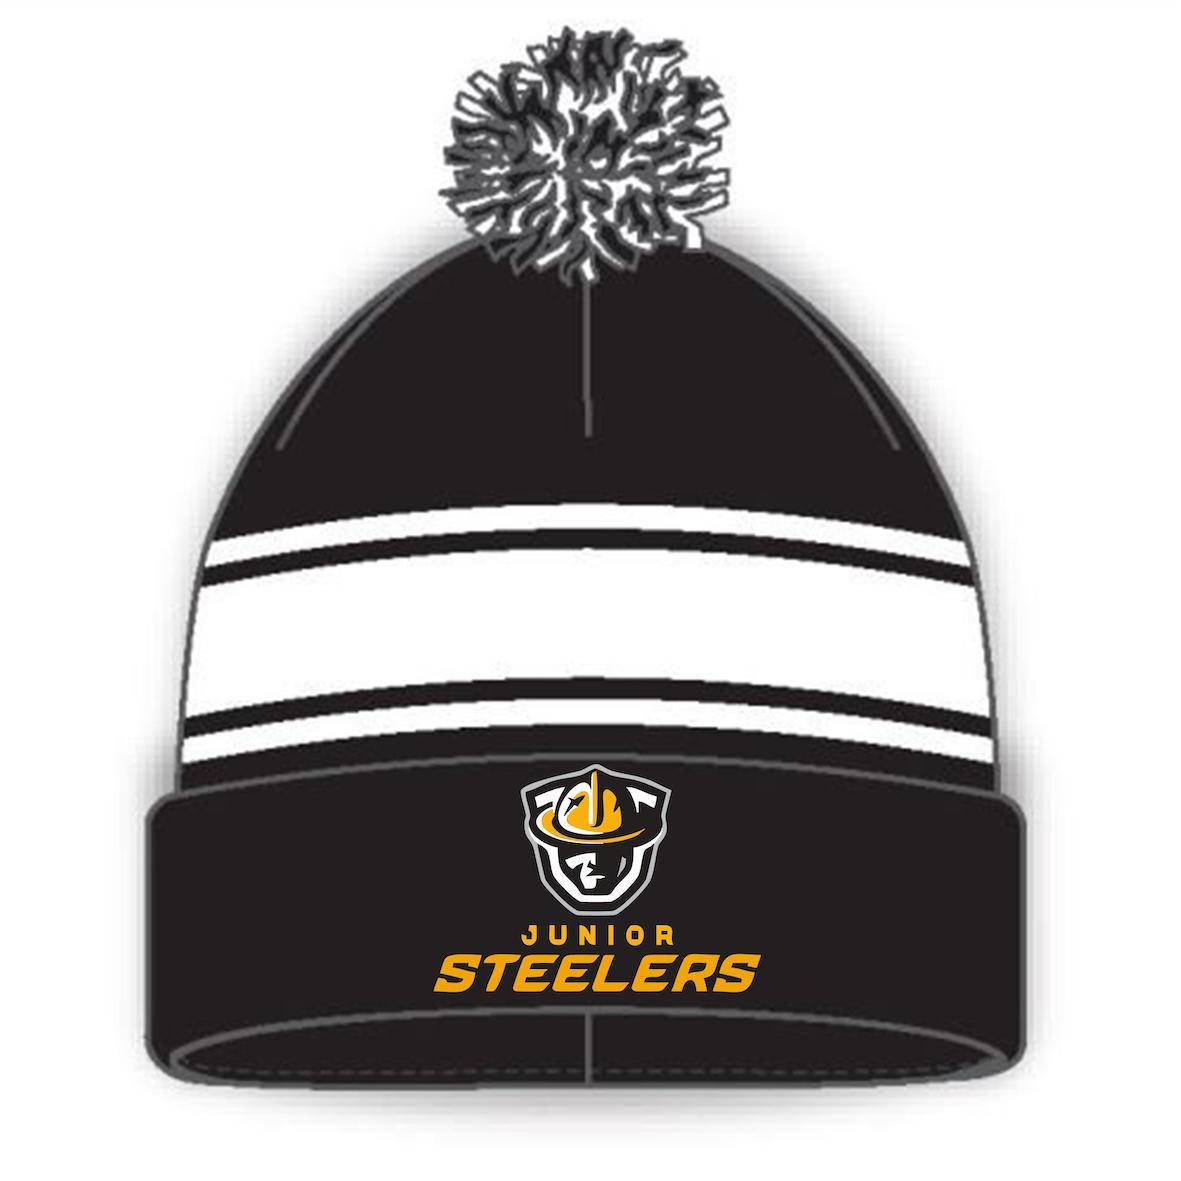 1b59e983e Junior Steelers CCM Pom Toque - Scoff s Hockey Shop